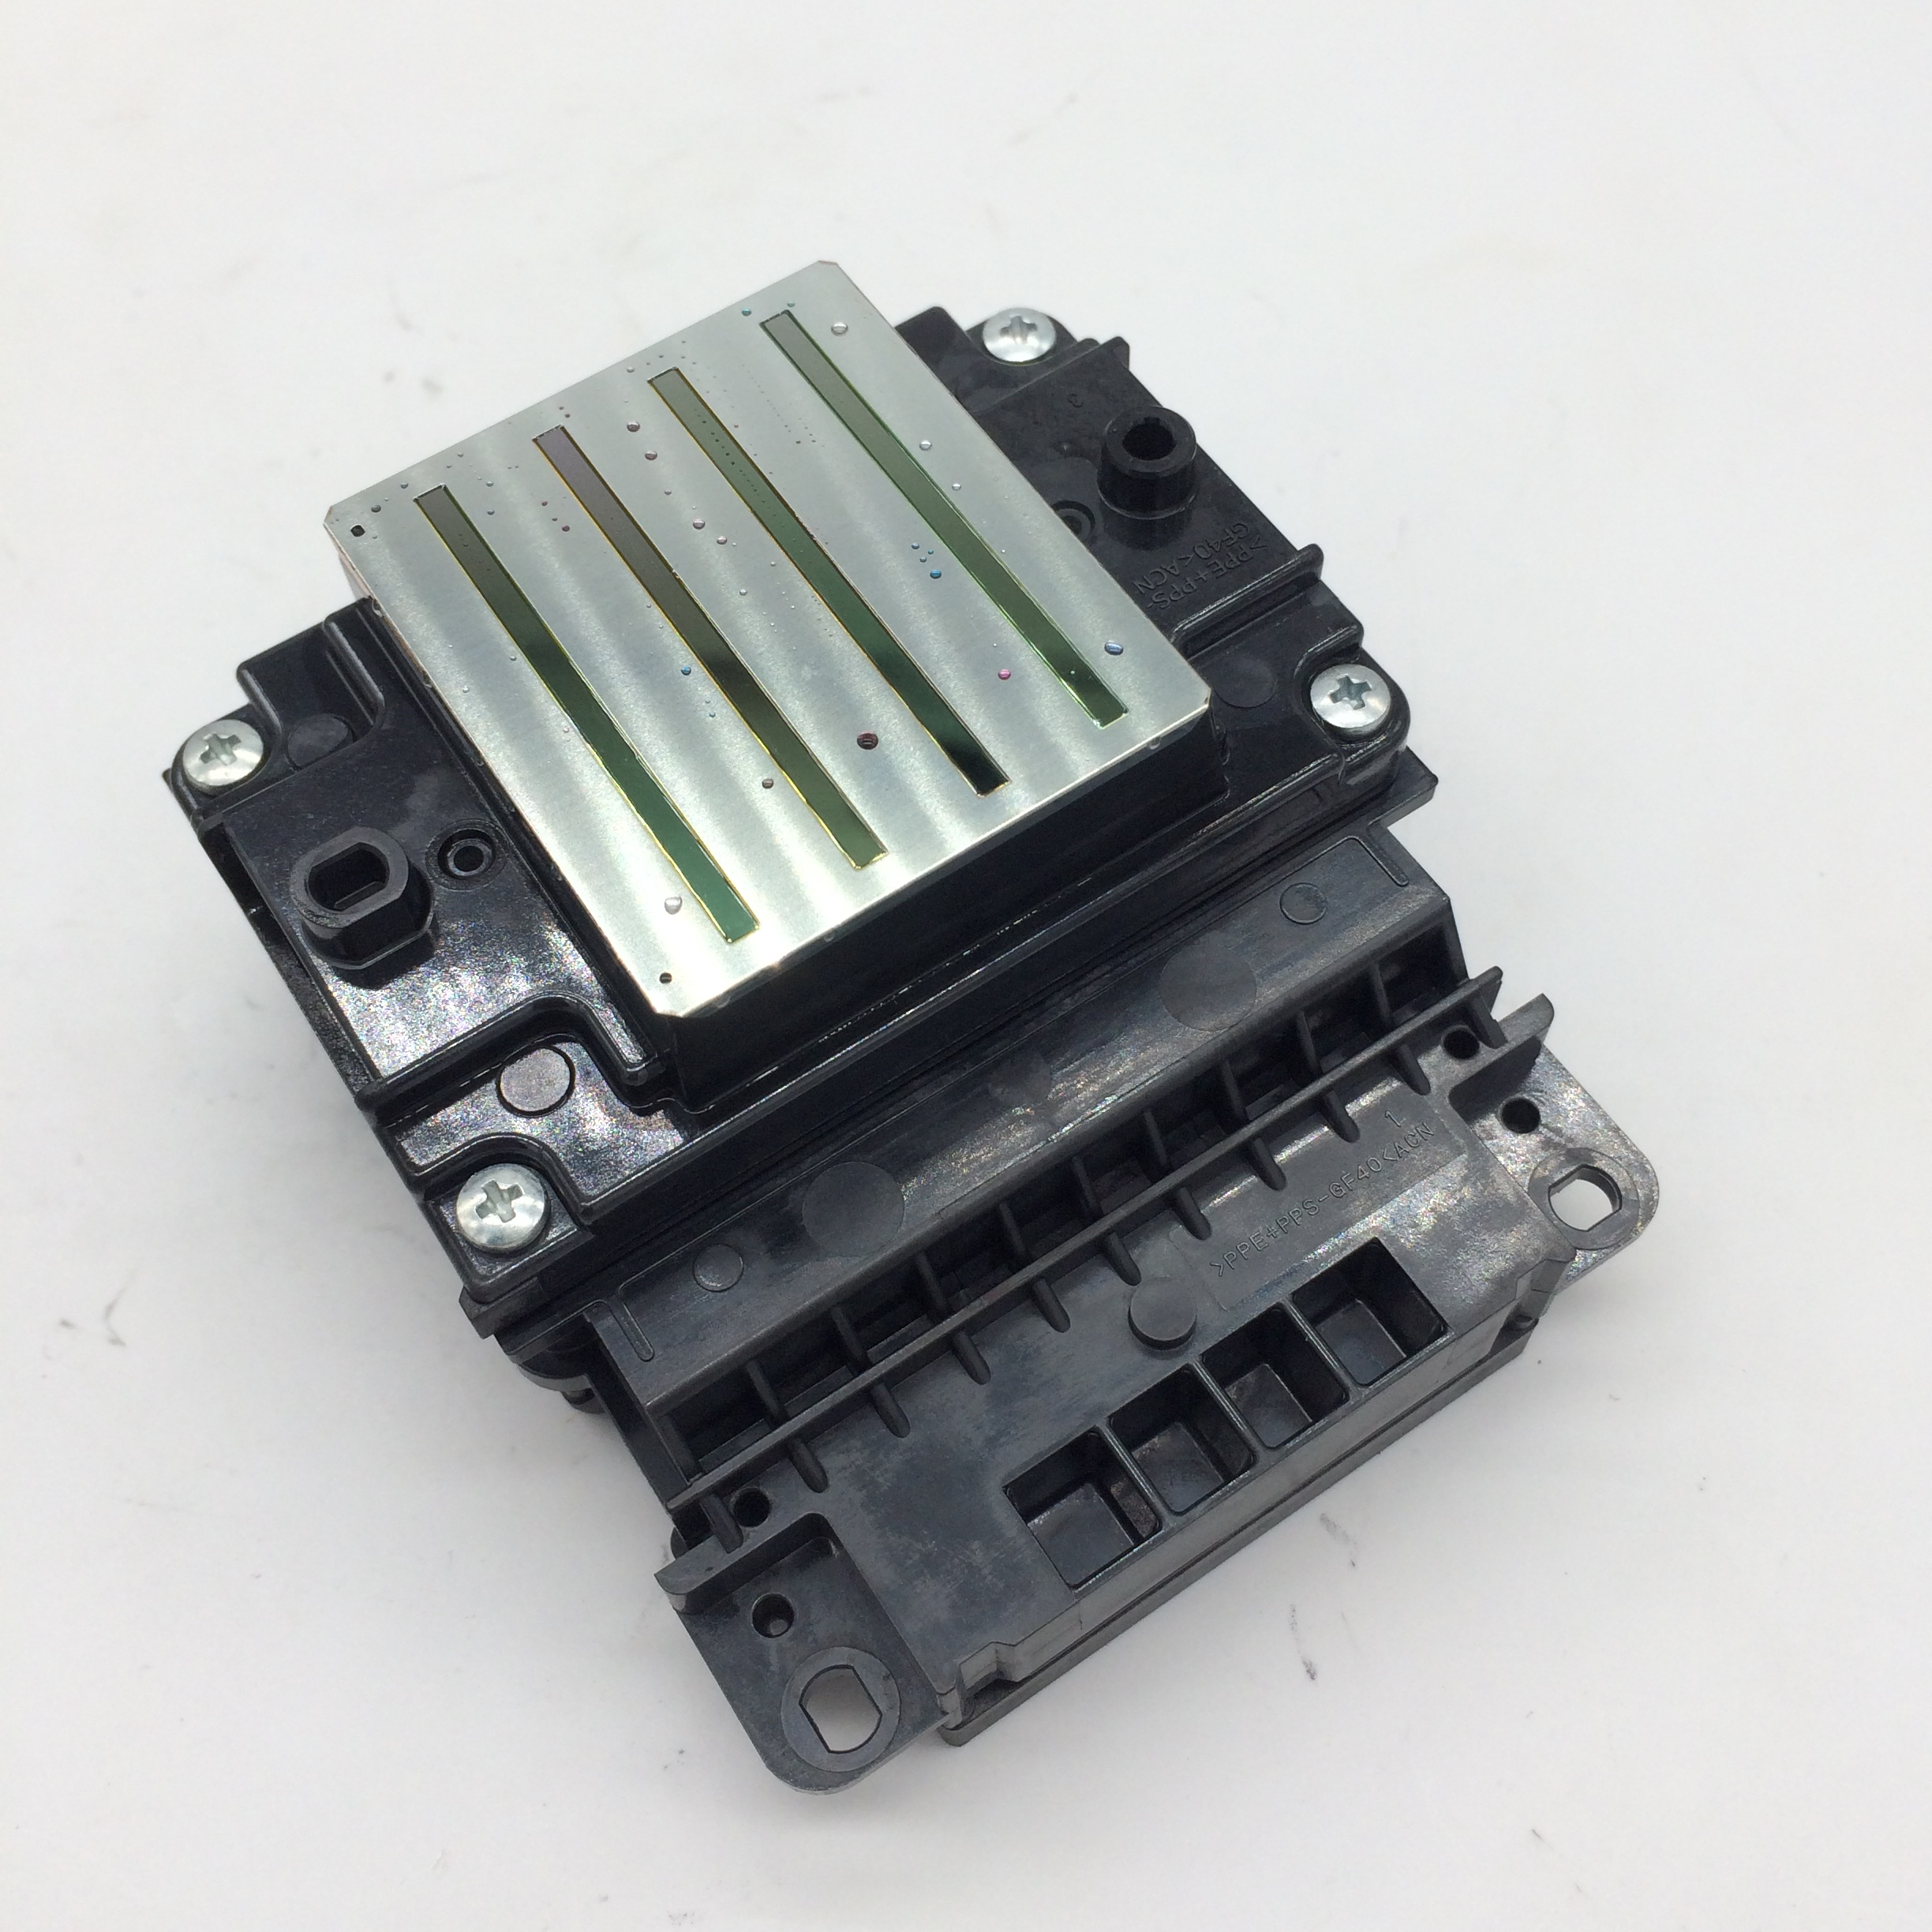 G4 5113 1ST locked print head FA160210 FOR EPSON PRINTER WF5110 WF5111 WF4630 wf 5110 WF5113